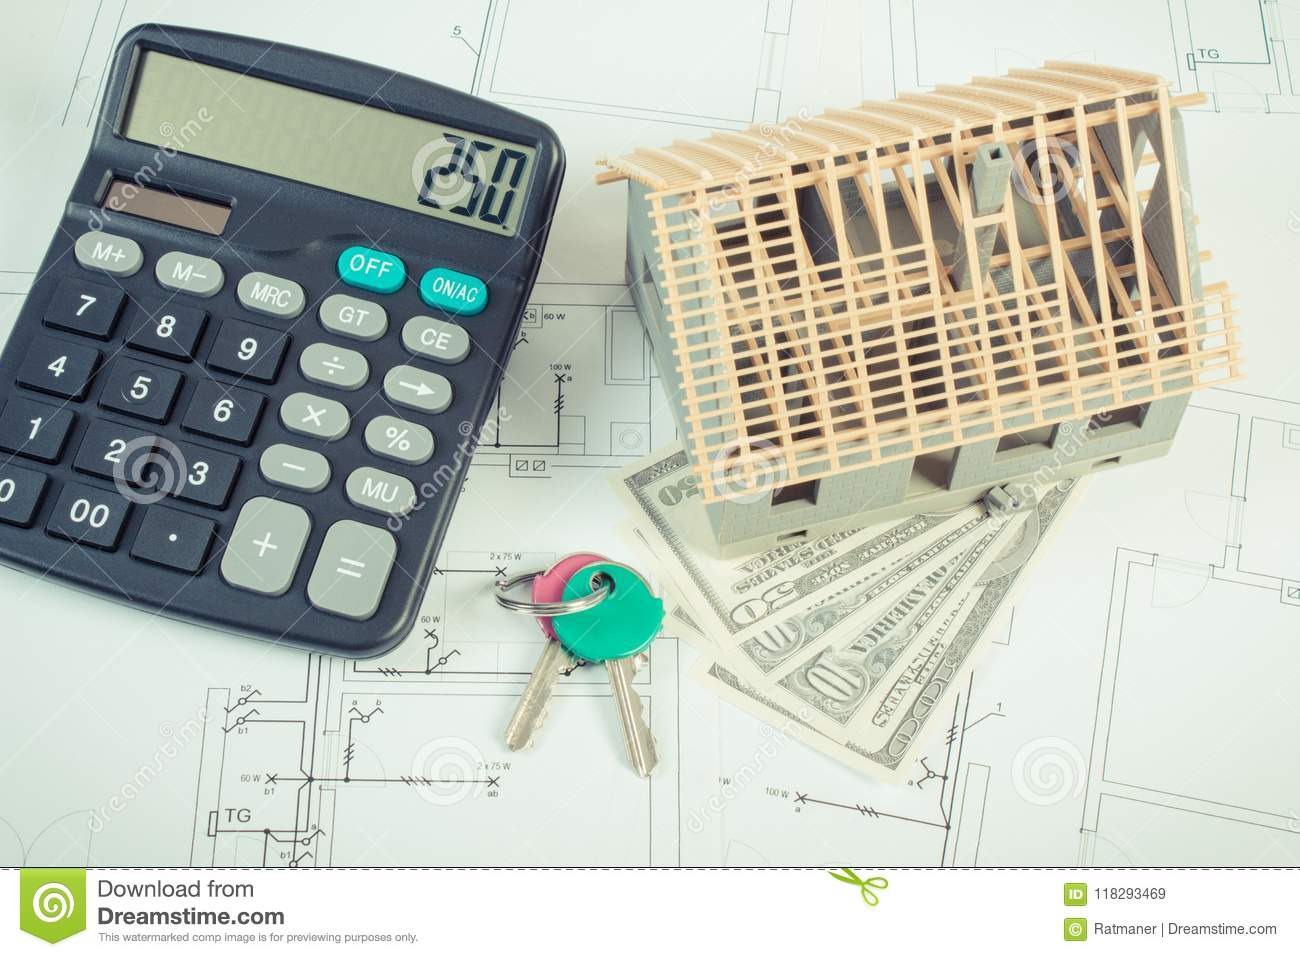 House Under Construction Keys Calculator And Currencies Dollar On Electrical Diagram Building Drawings Diagrams